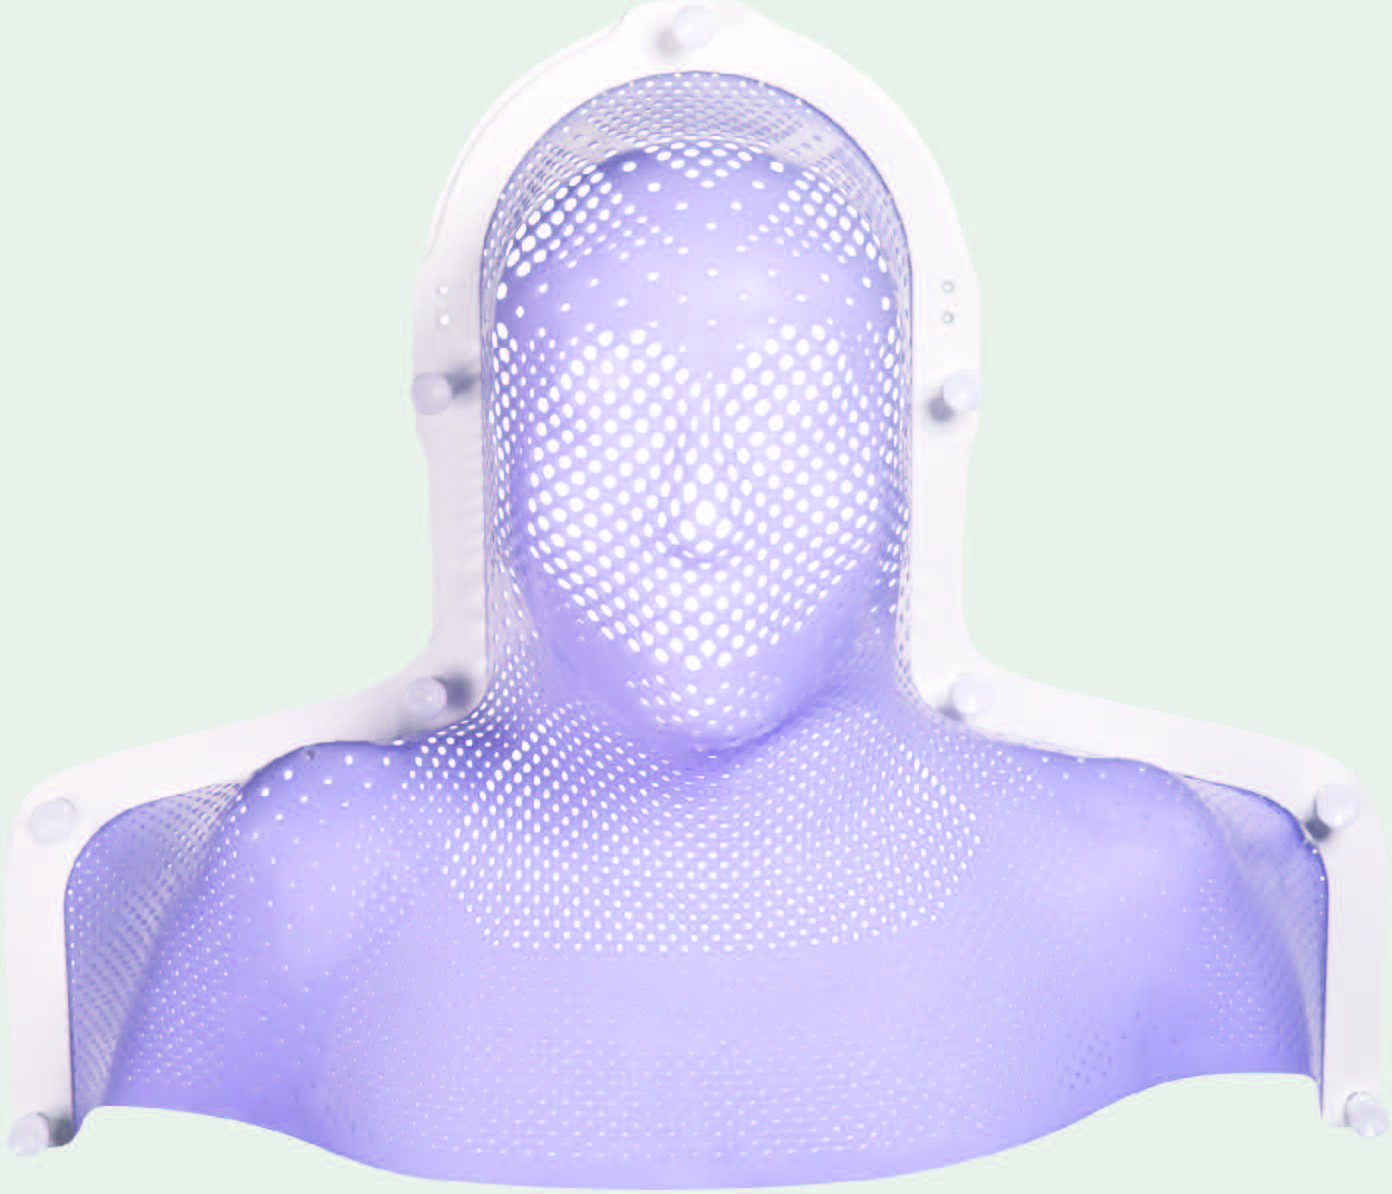 Thermoplastic mask for radiotherapy fixation and immobilization